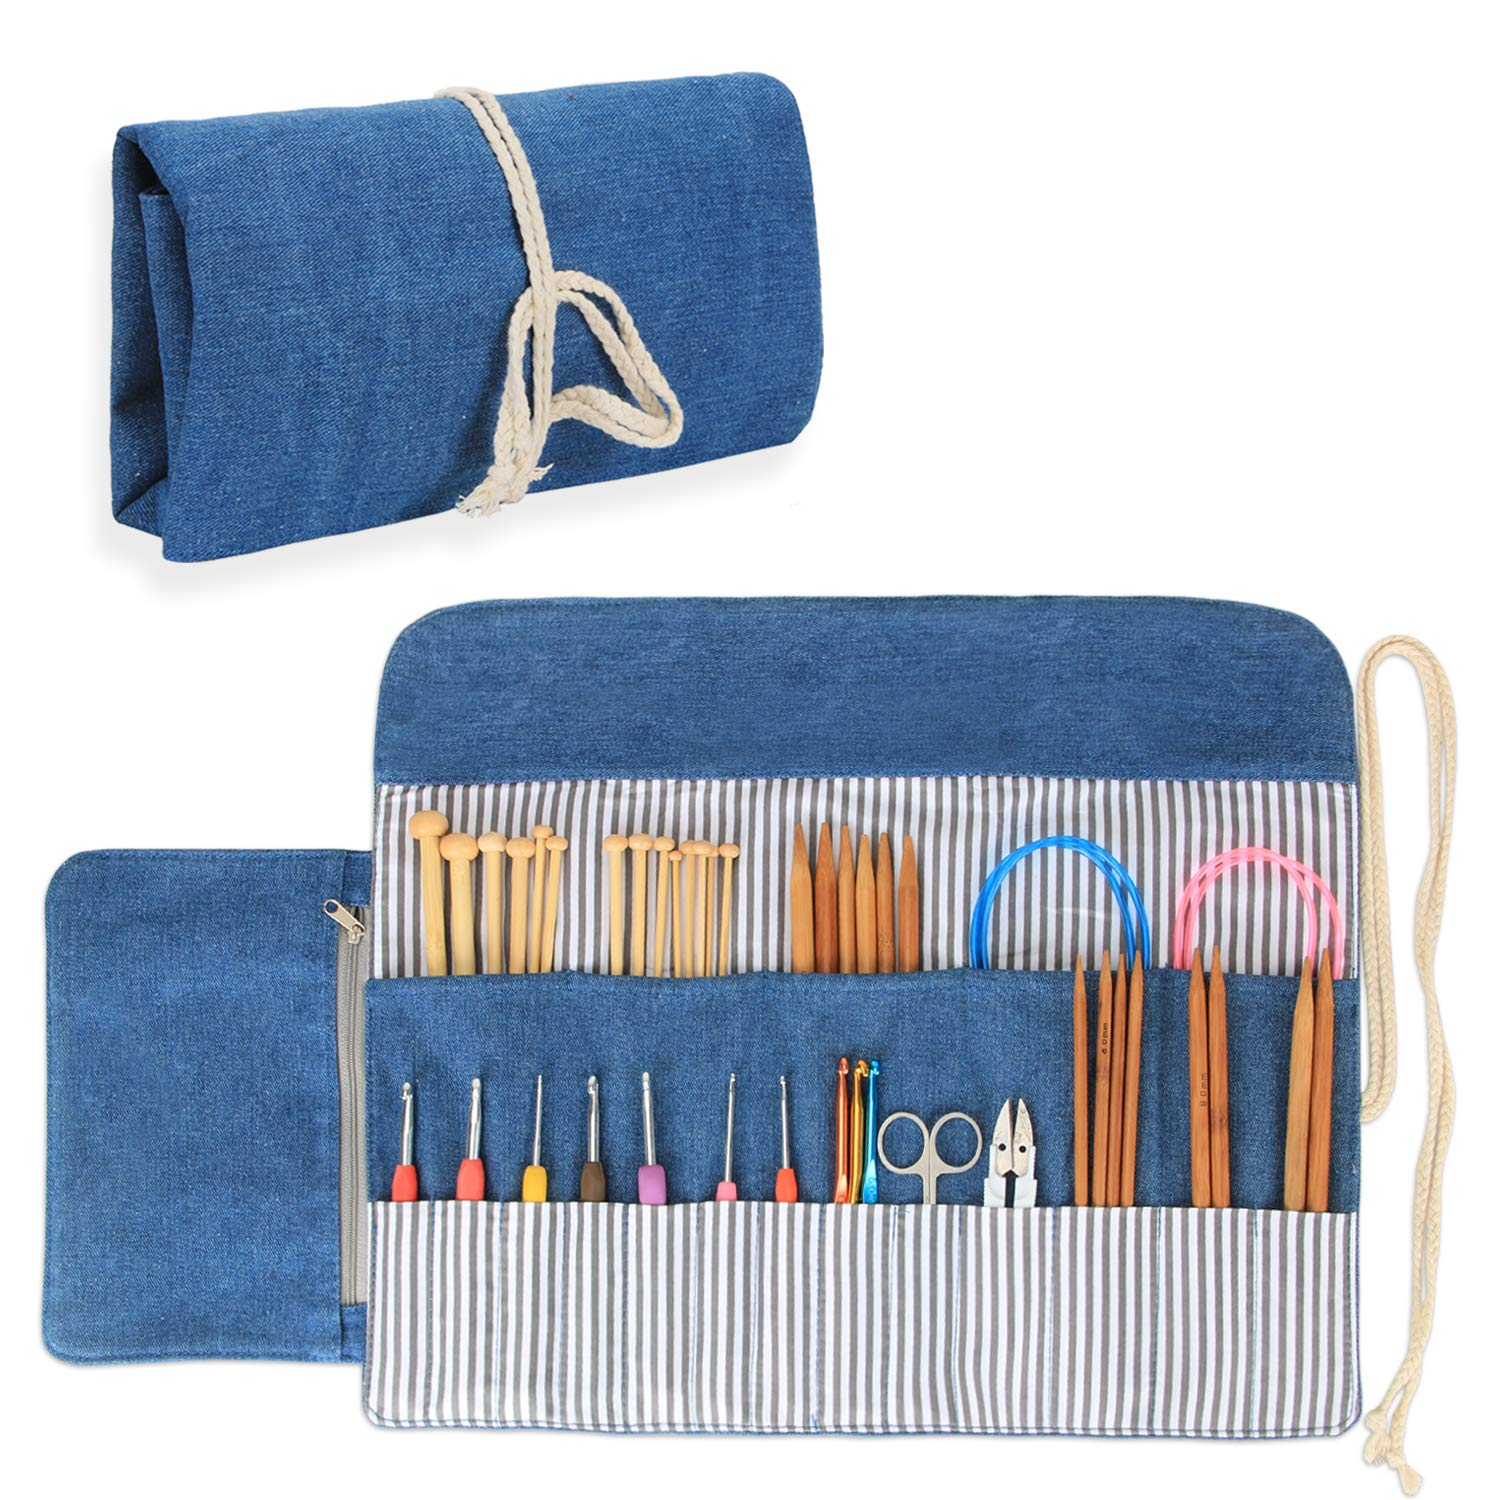 Luxja Knitting Needles Organizer, Rolling Bag for Knitting Needles (up to 10 Inches), Crochet Hooks and Accessories (No Accessories Included), Blue by LUXJA (Image #1)